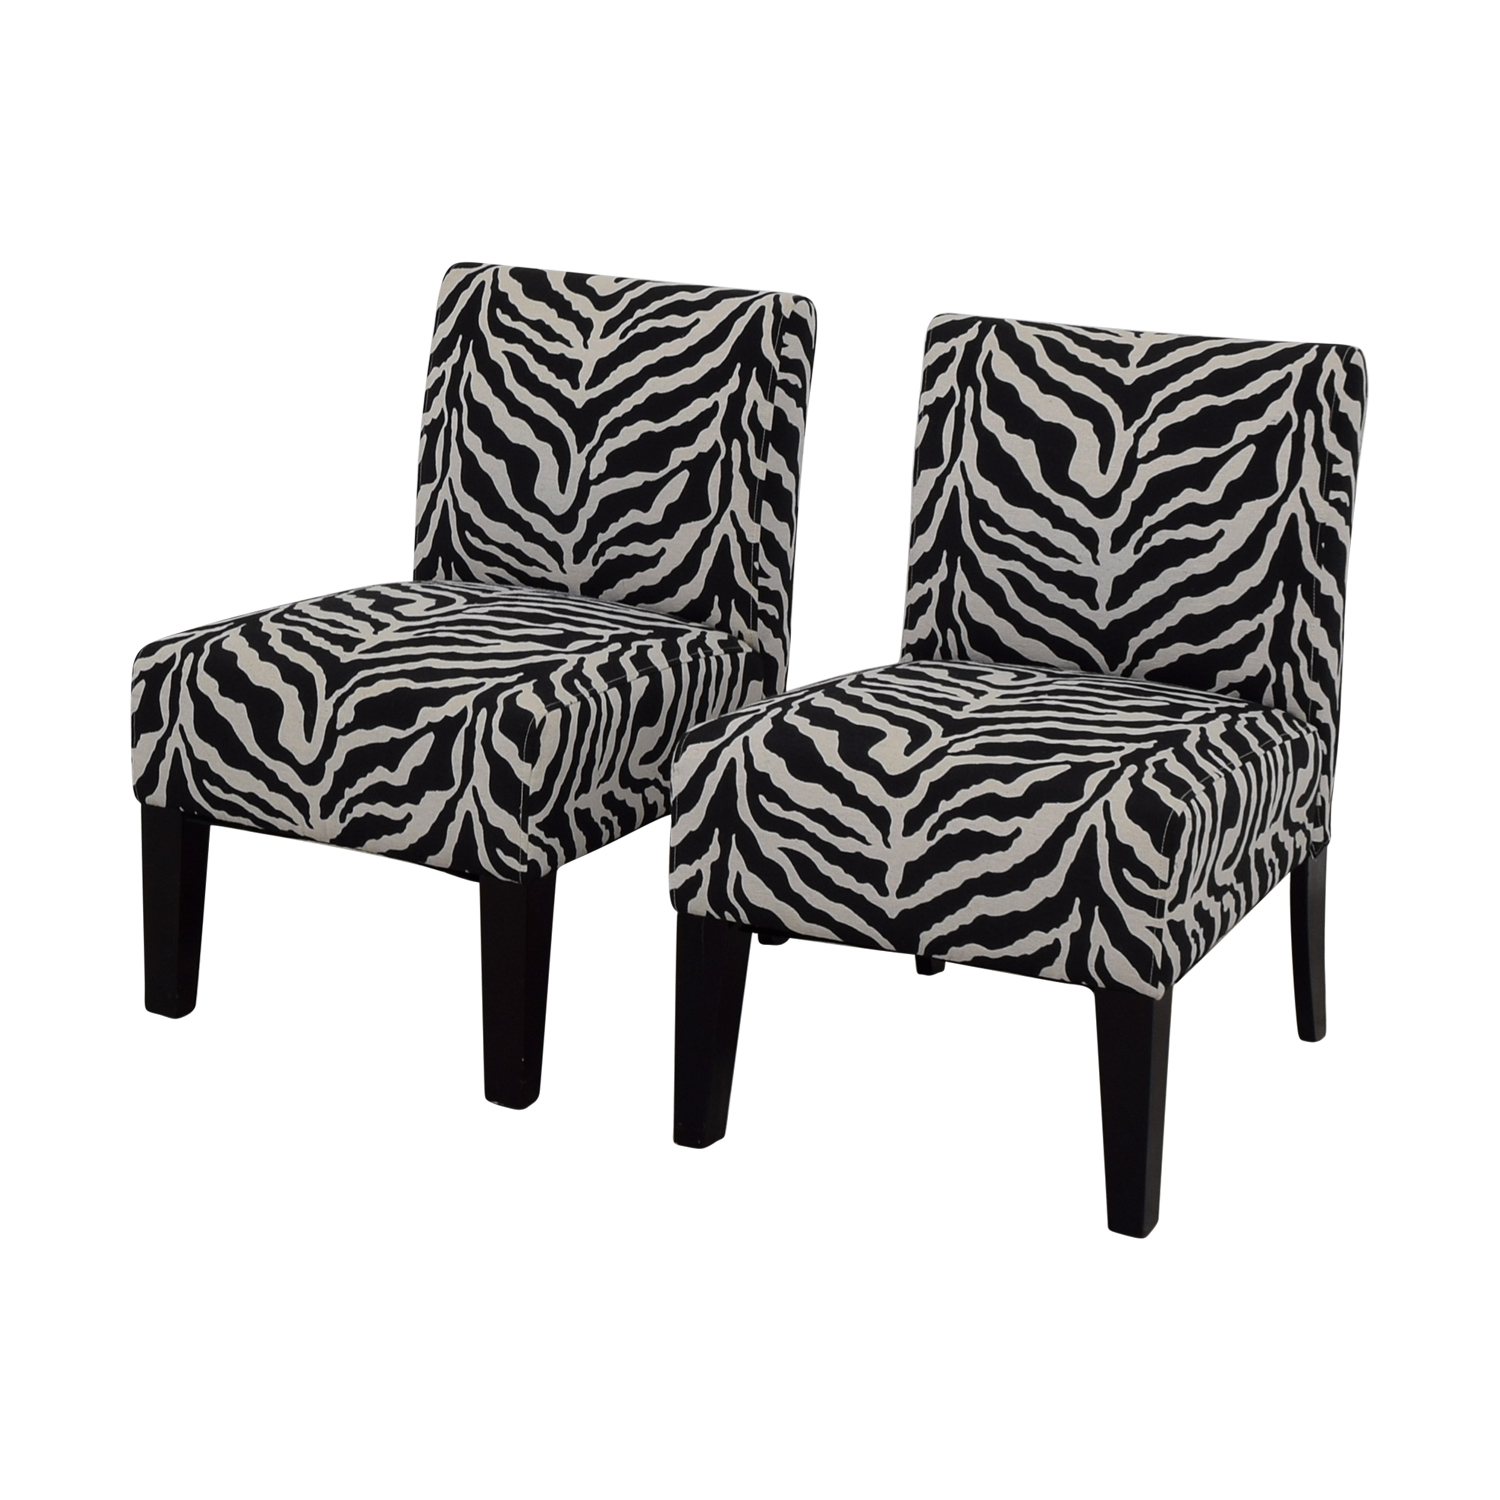 Zebra Accent Chair 80 Off Aberly Aberly Zebra Accent Chairs Chairs